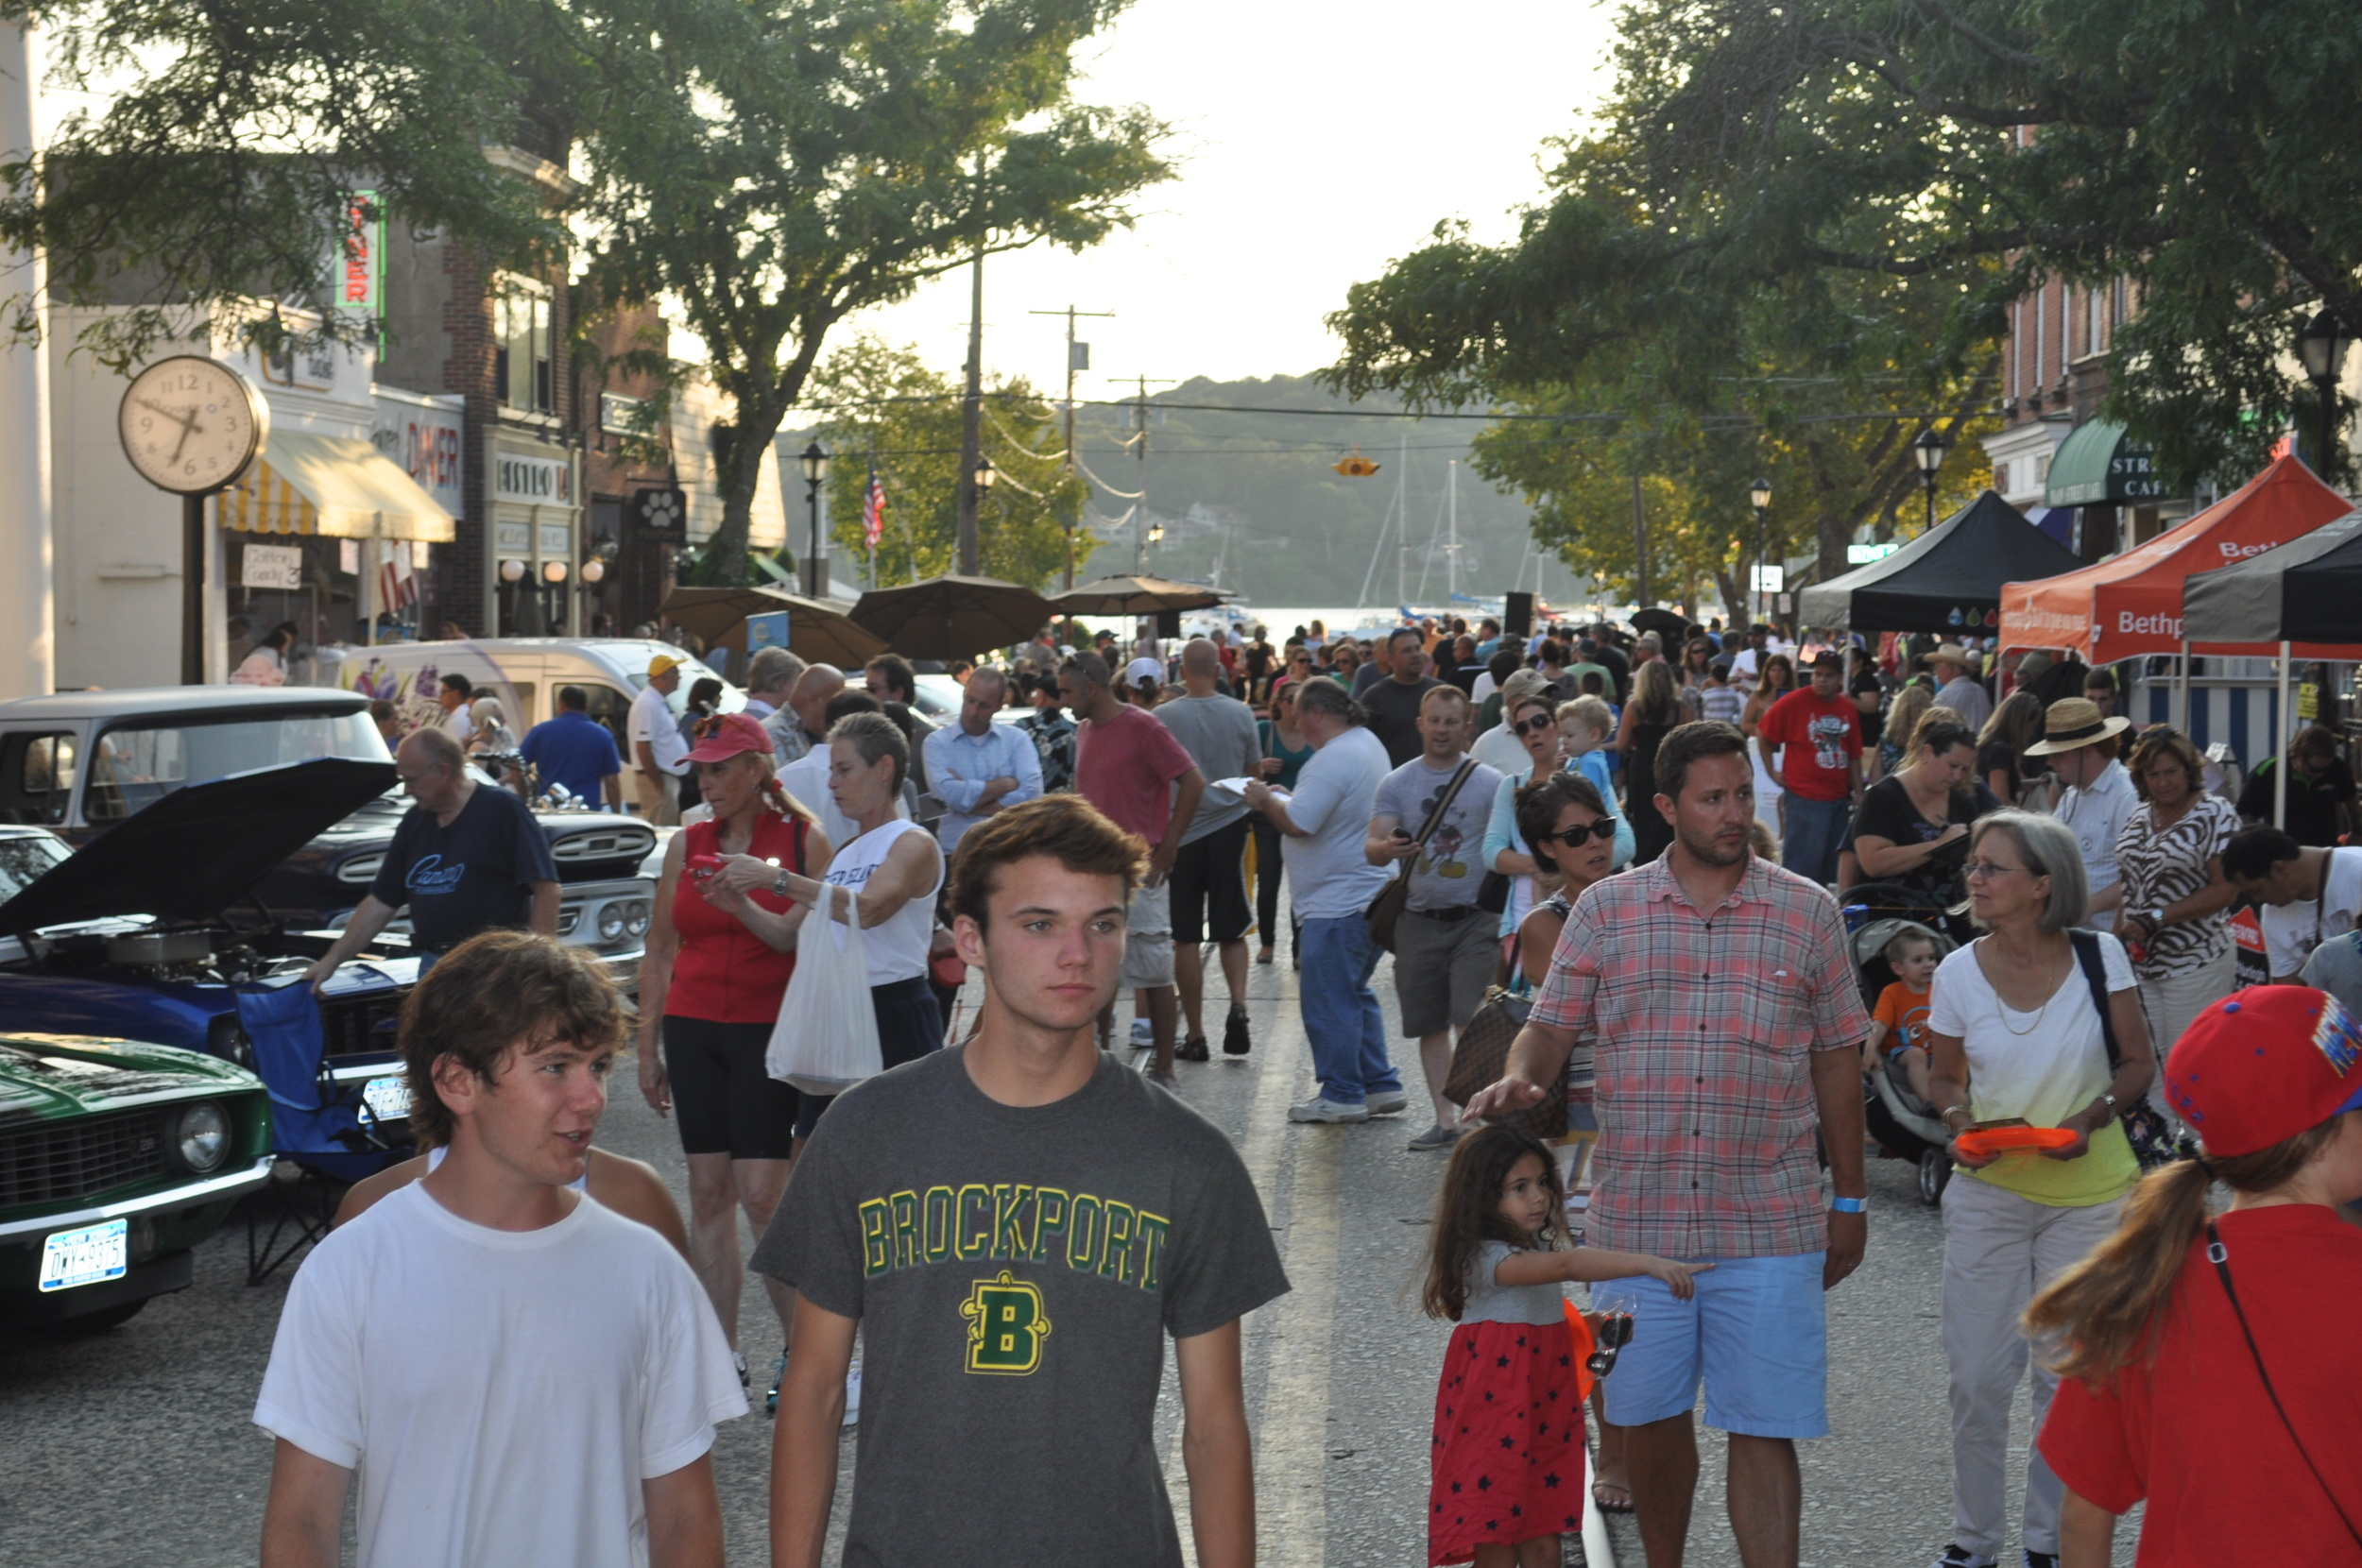 Clear skies meant thousands packing Northport Village's Main Street.